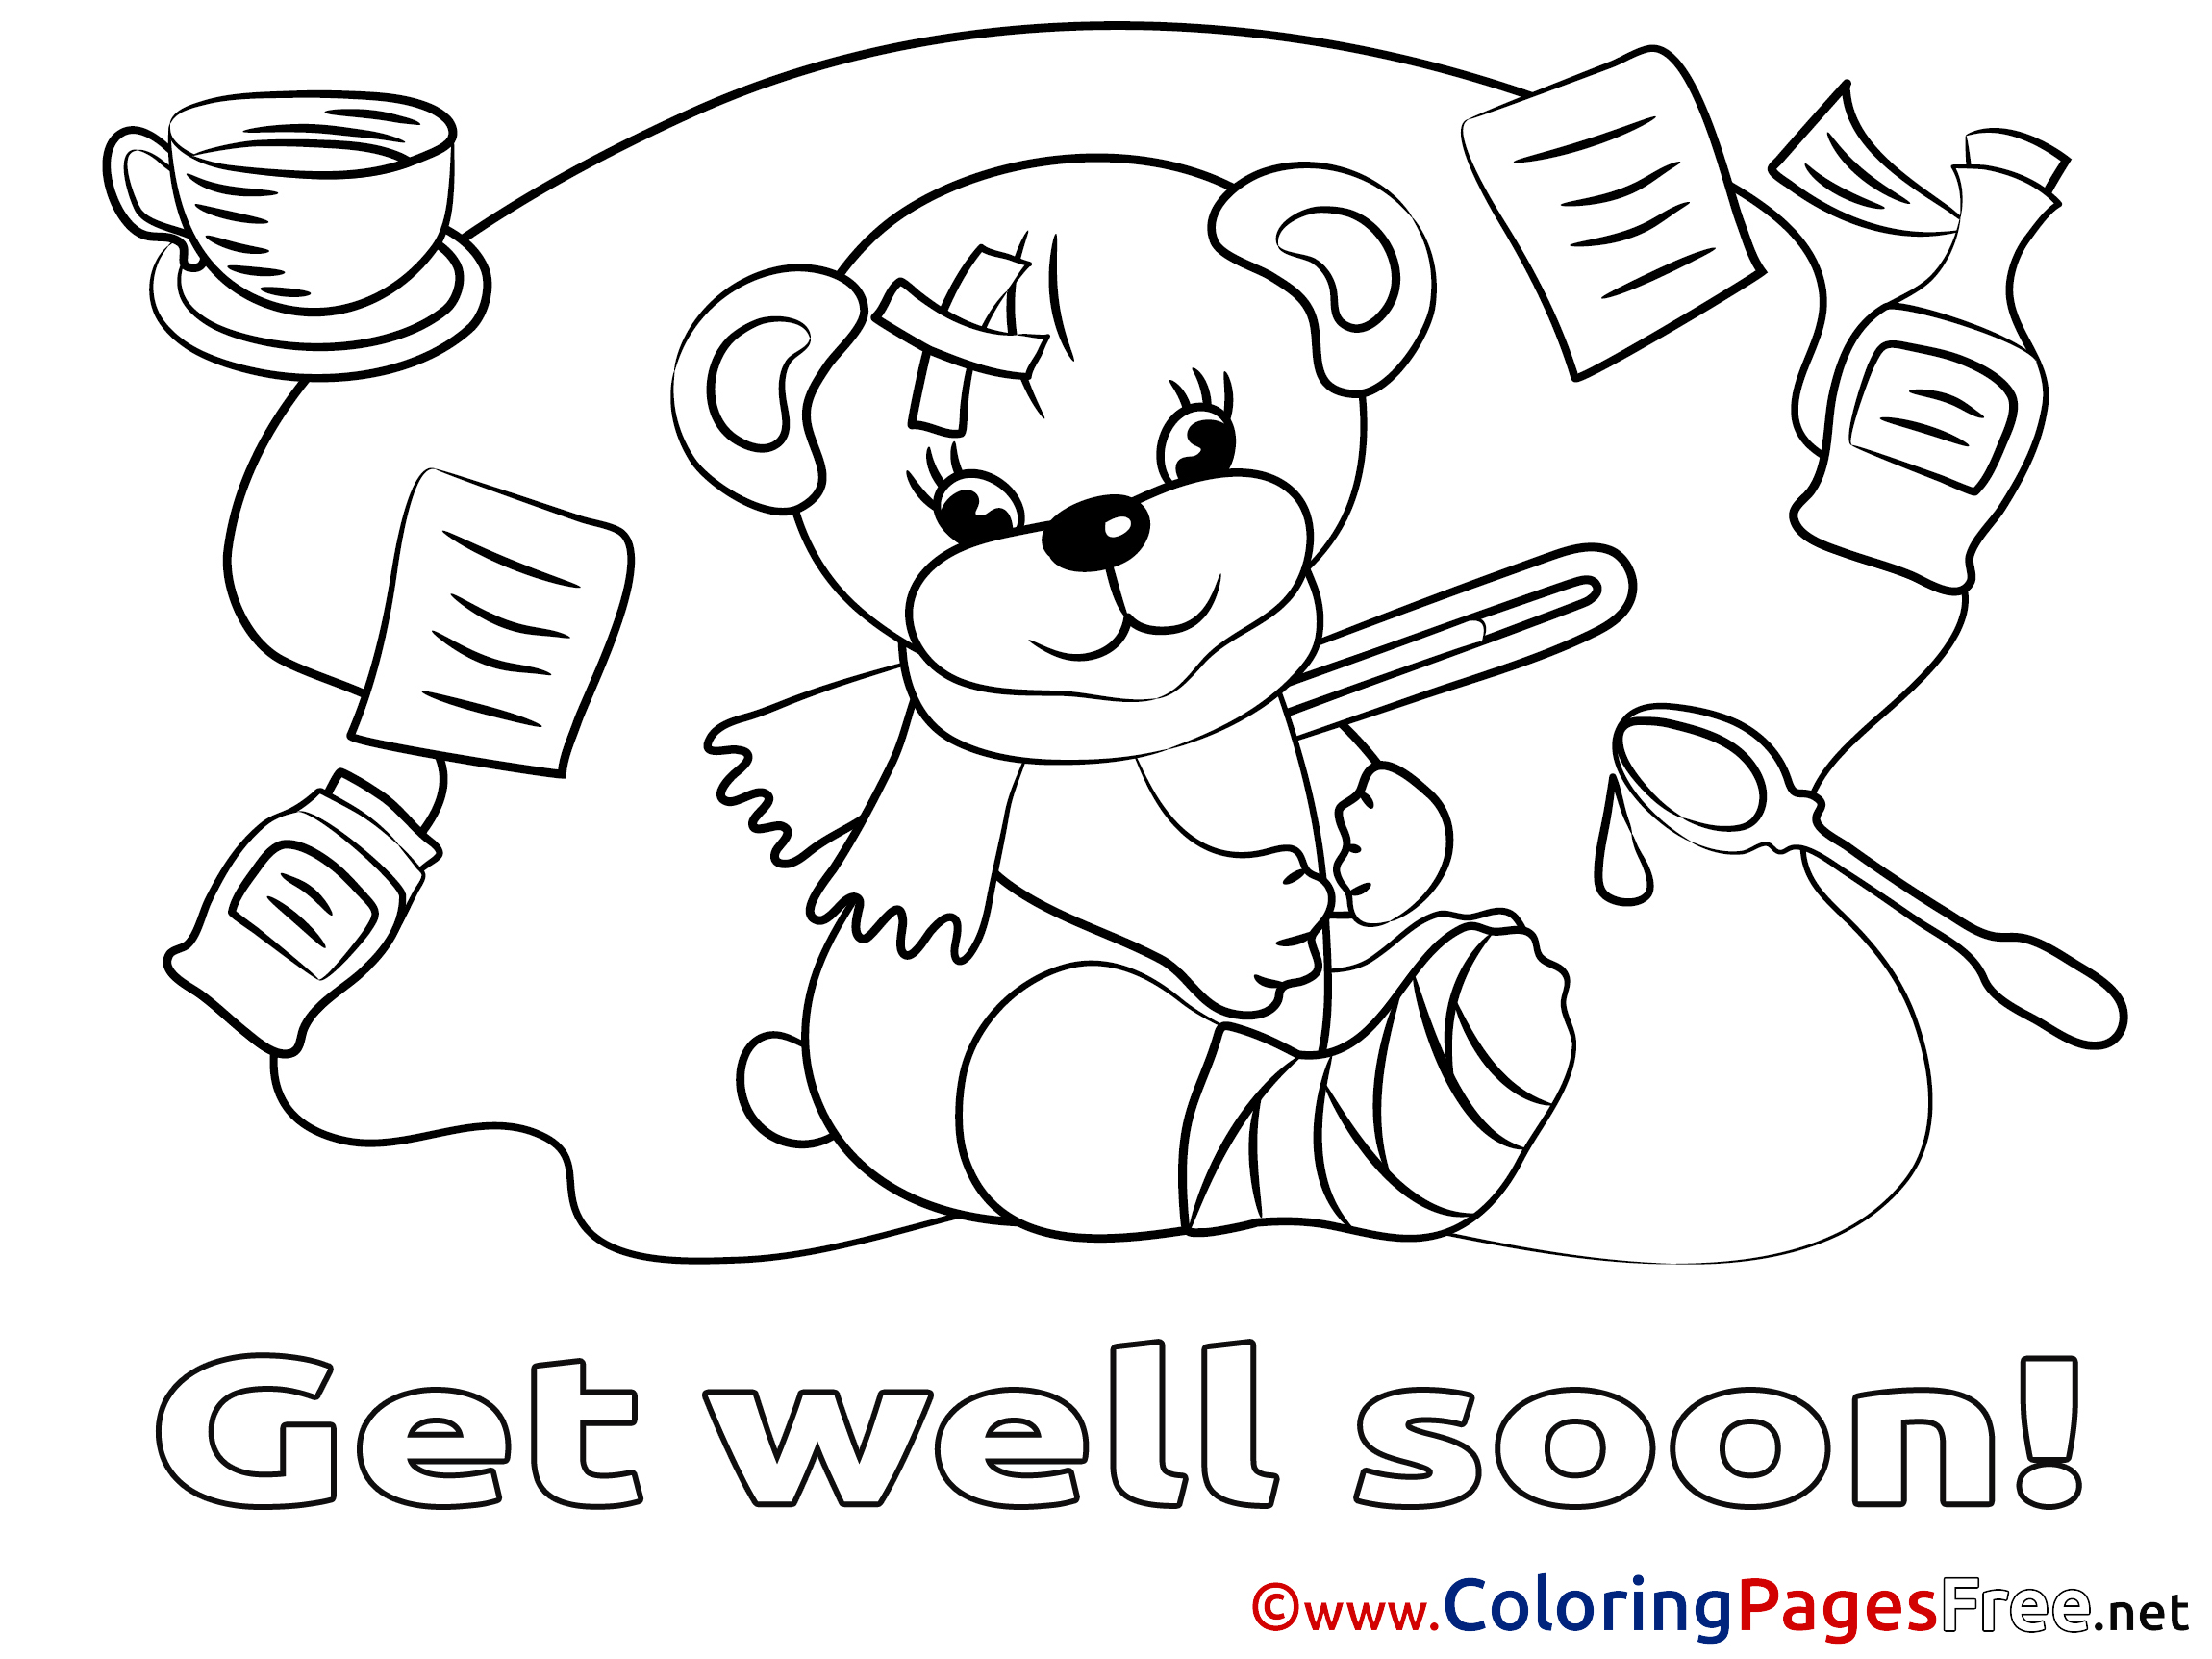 Bear Get well soon free Coloring Pages